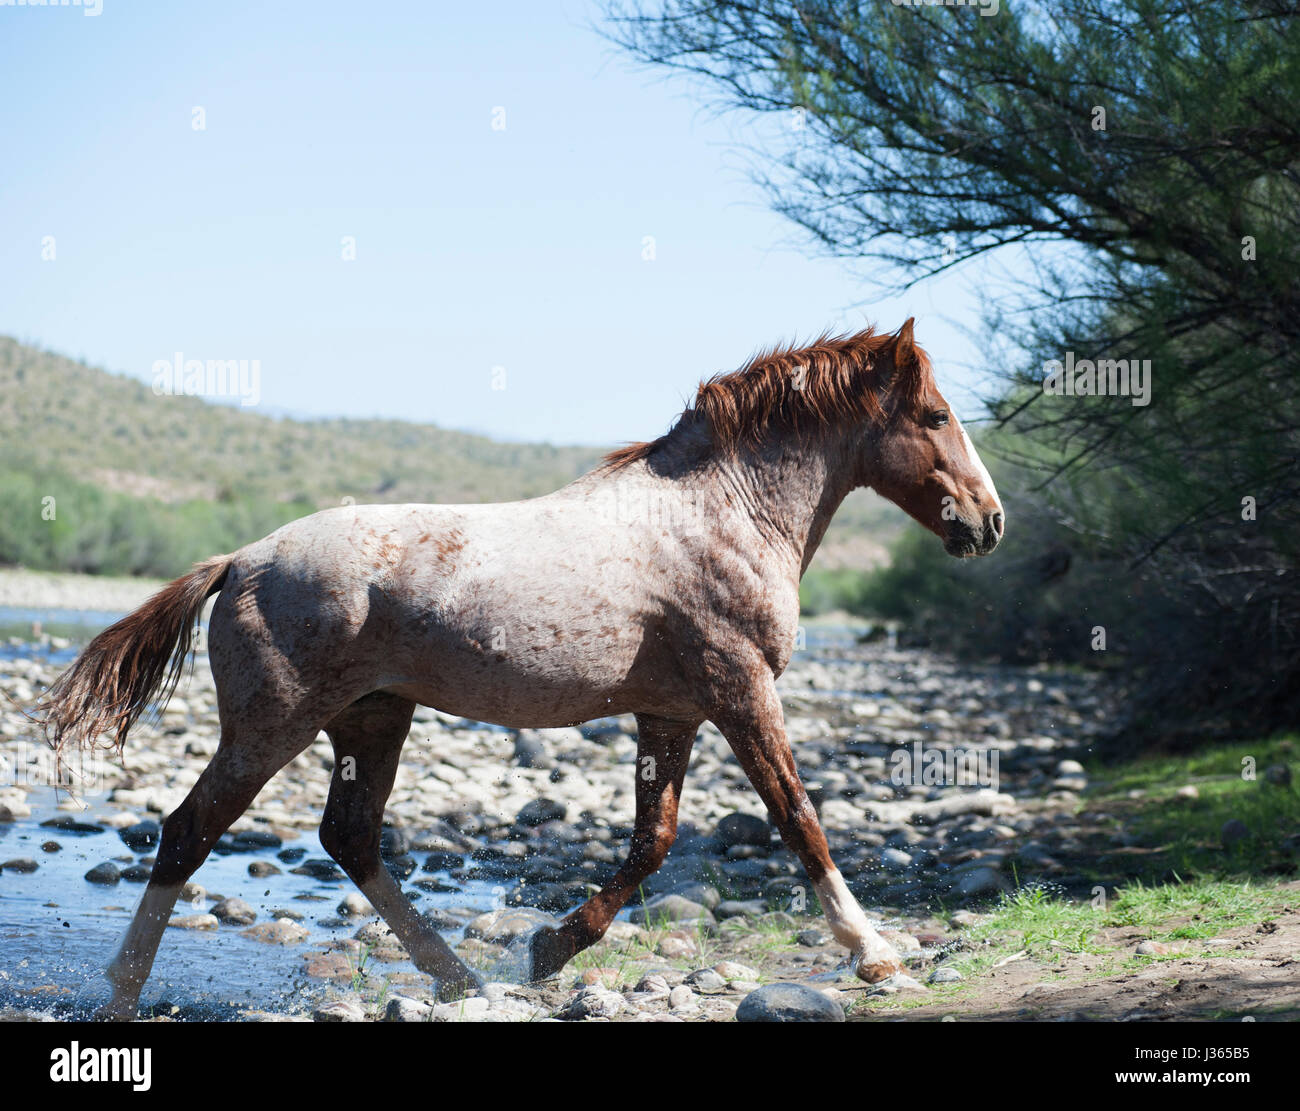 Salt River Wild Horses in Arizona - Stock Image